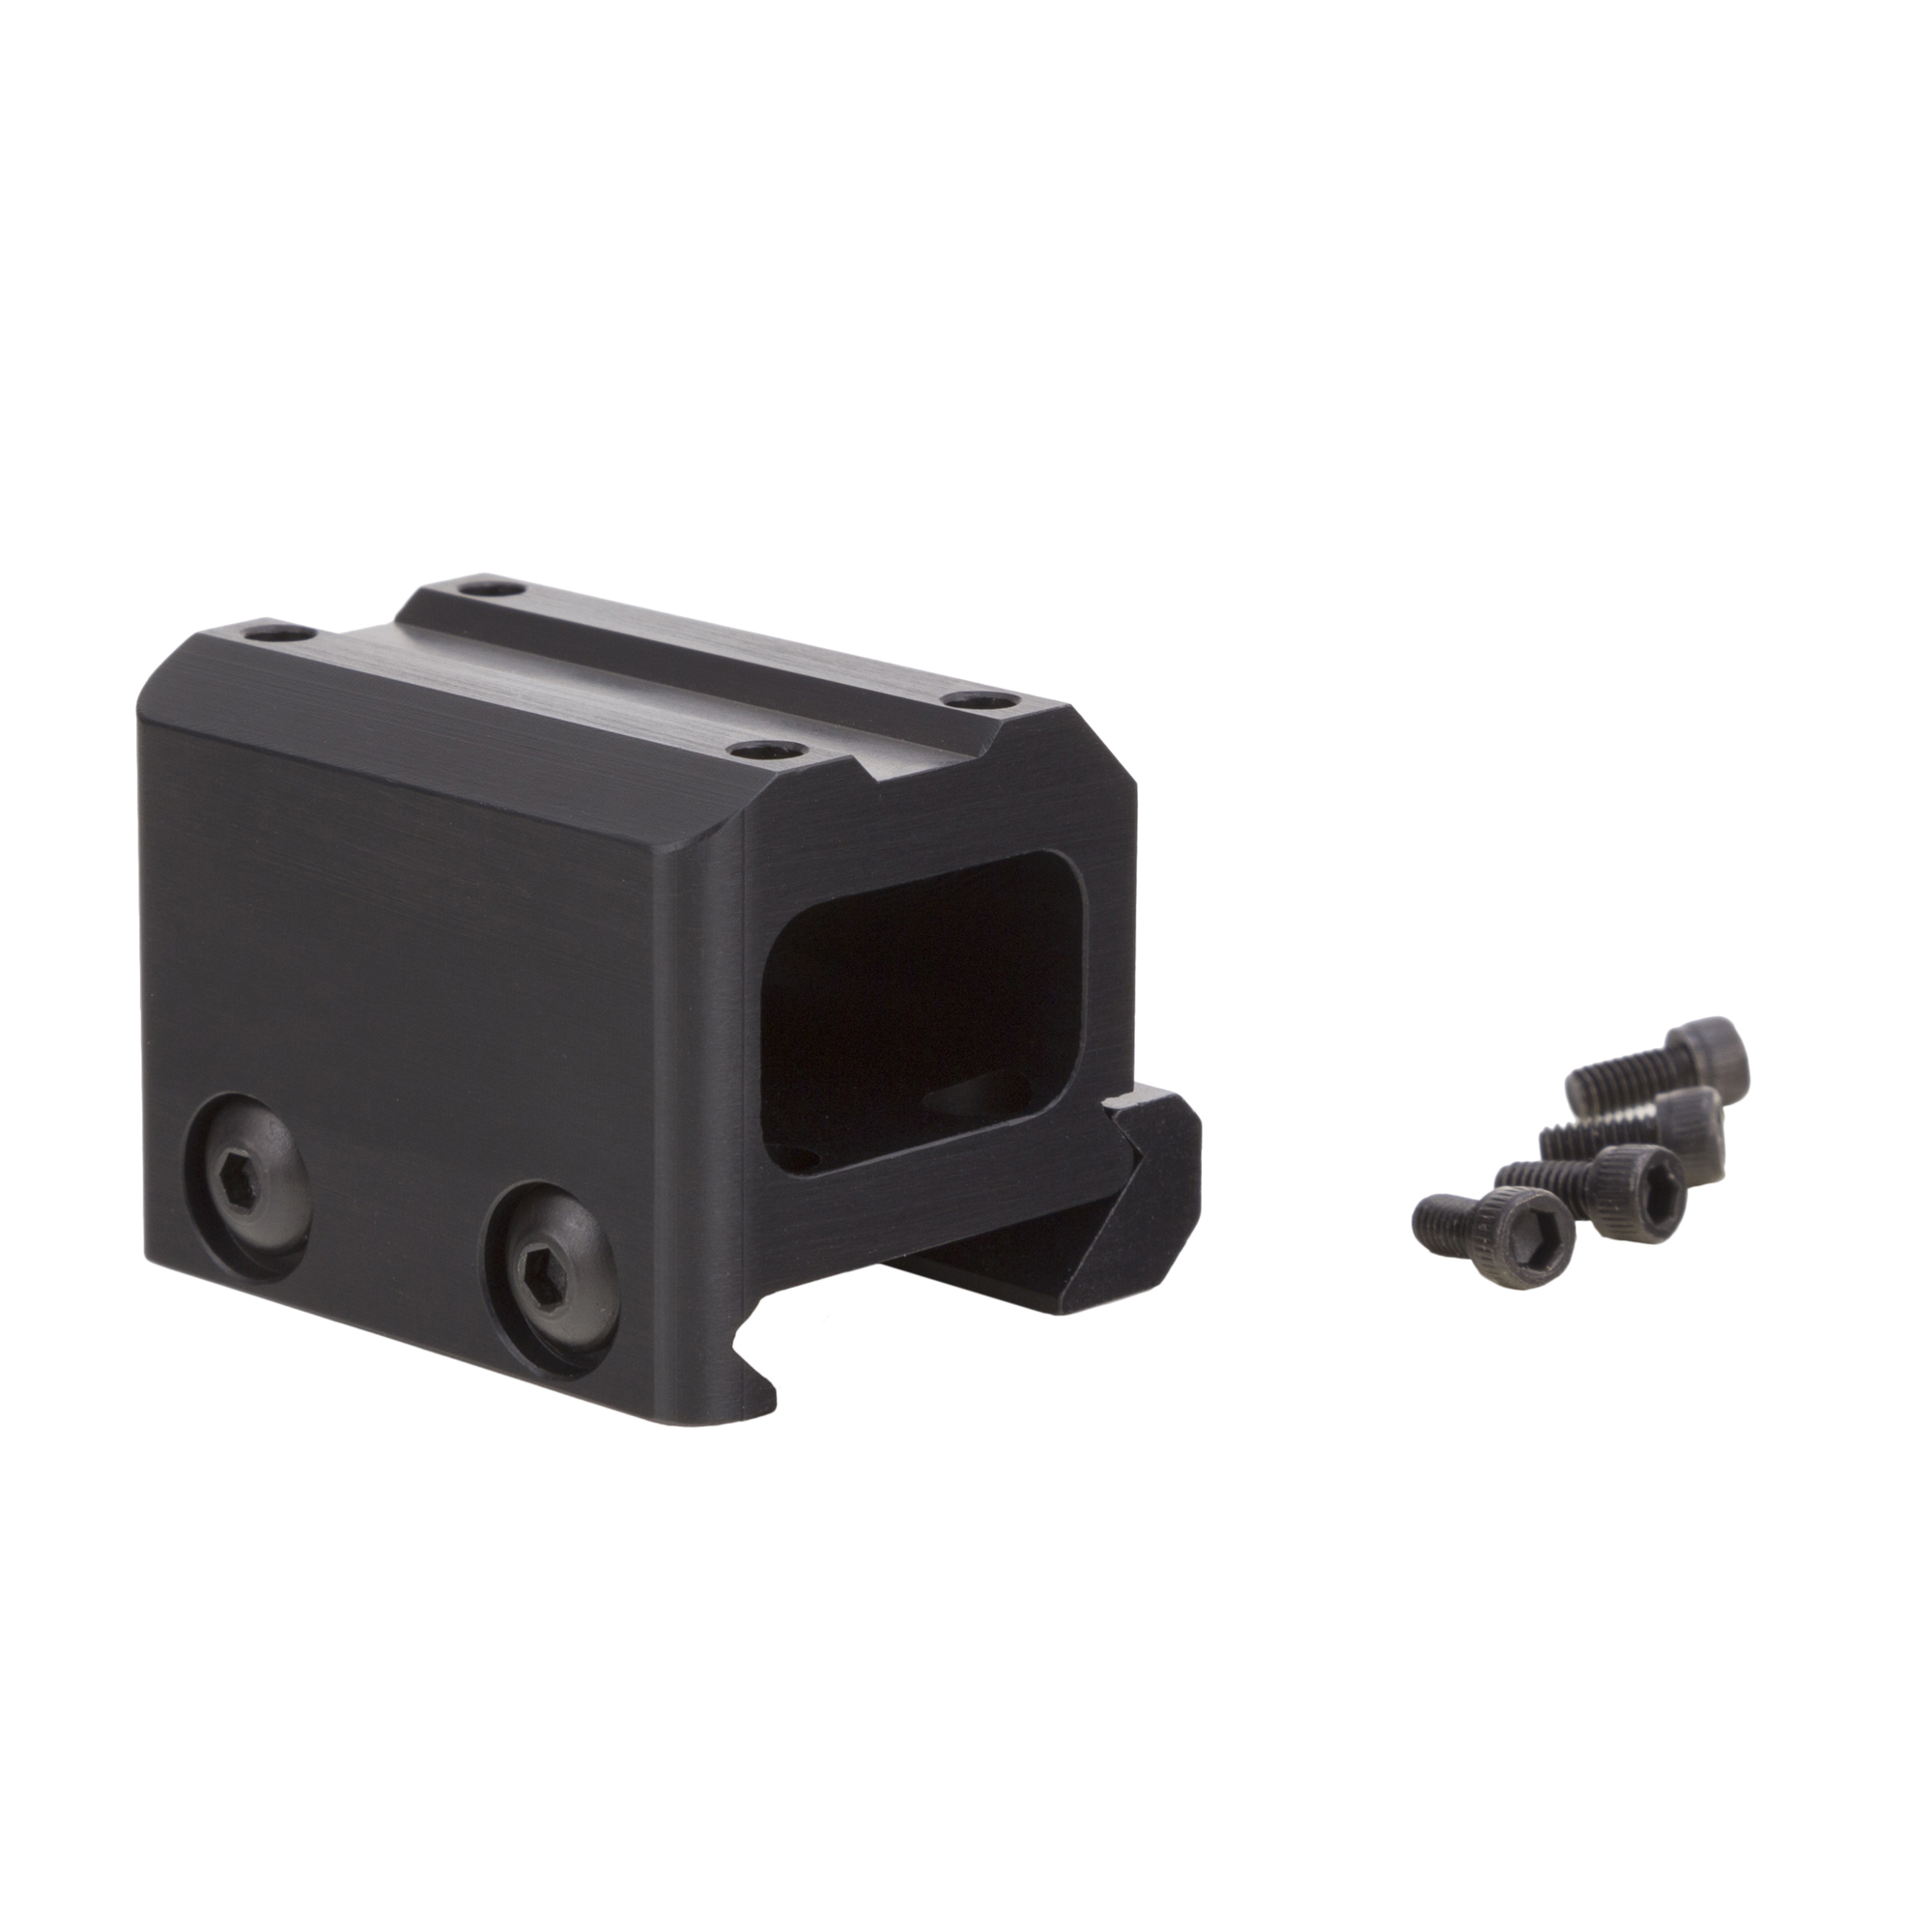 Fits the Trijicon MRO(R).